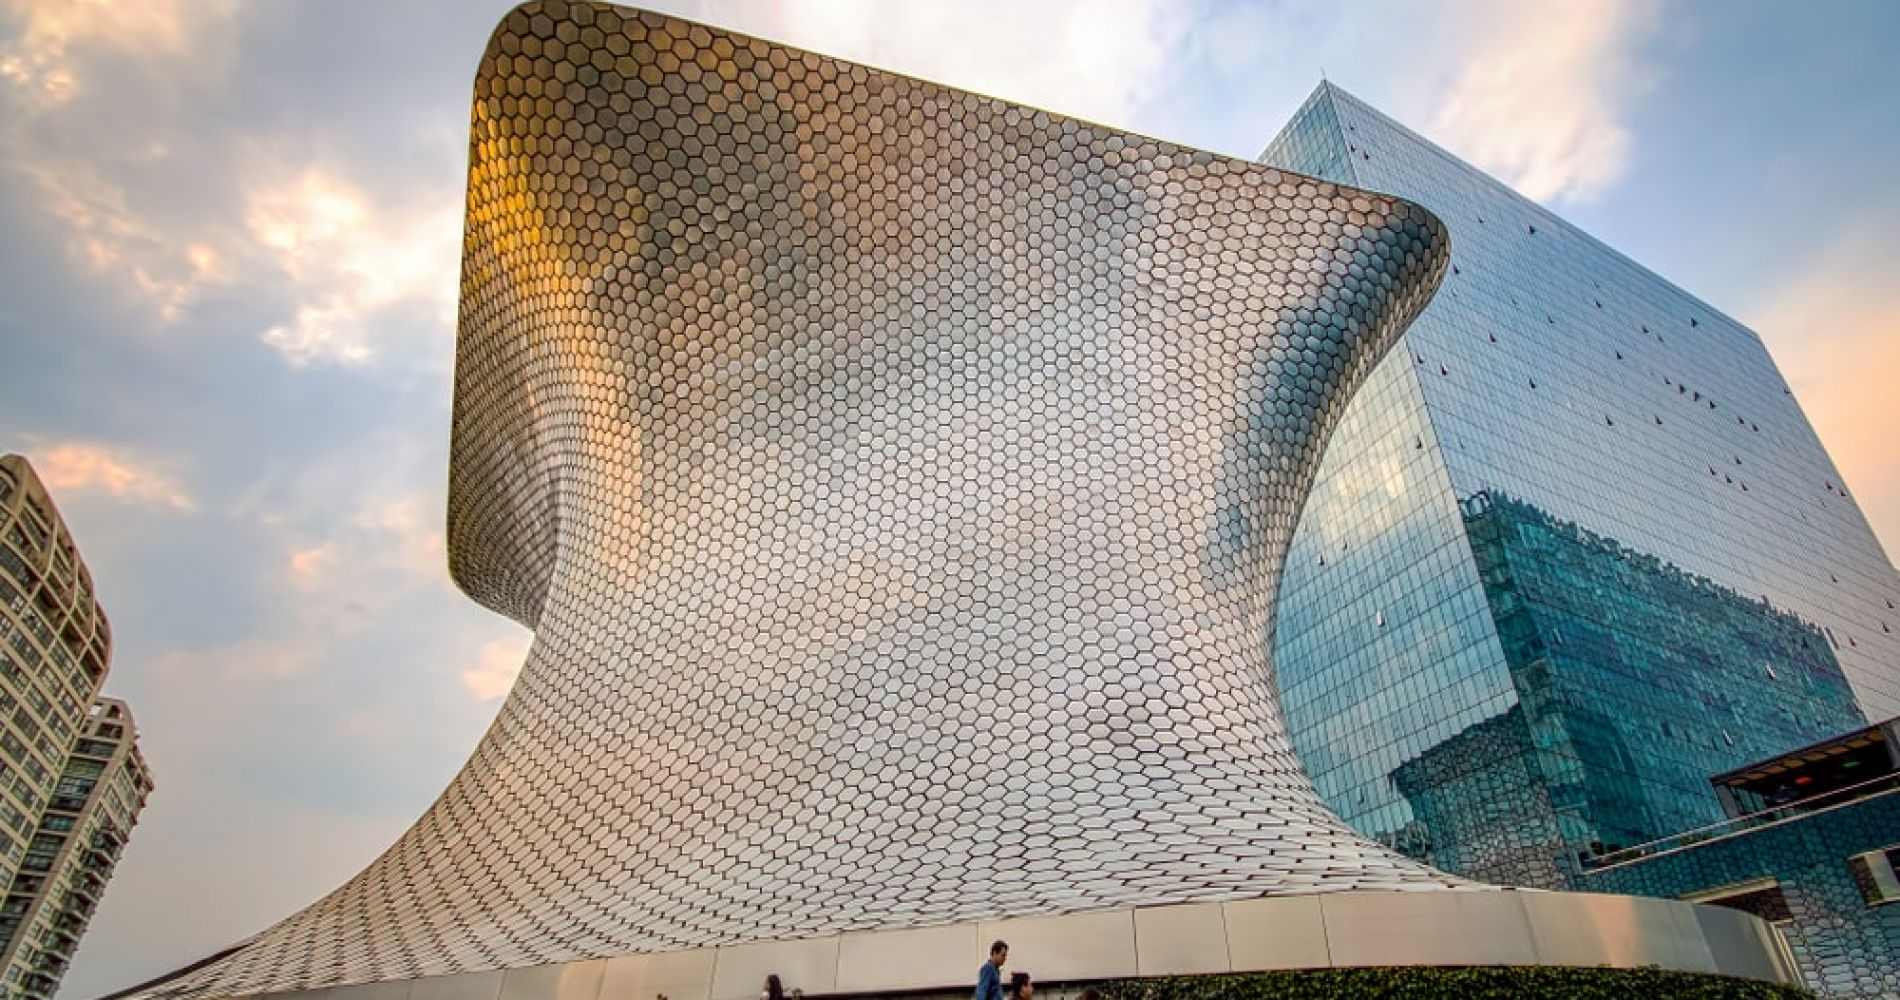 Admire the works of the most famous artists at Museo Soumaya